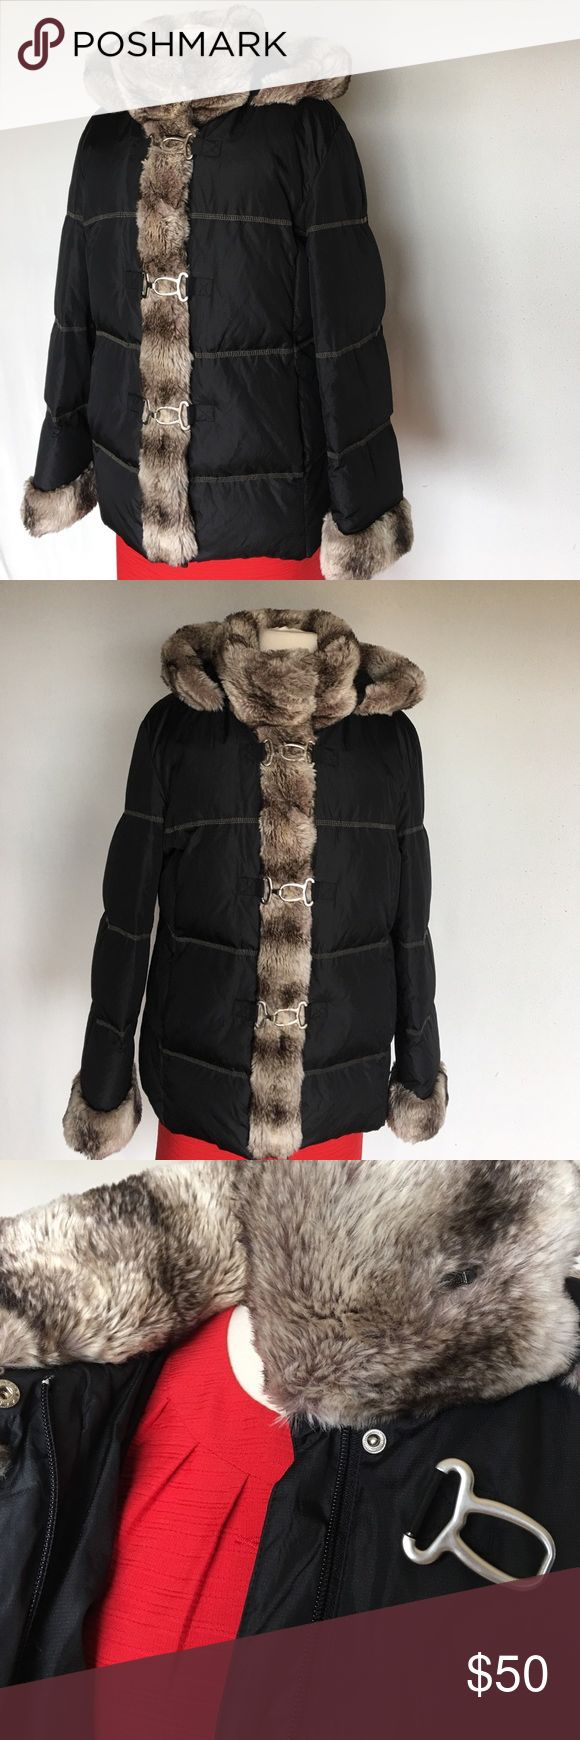 """HILARY RADLEY New York Size L(10-12) Like new coat Priced for quick sale! Worn few times , dry cleaned , flawless in mint condition.Fits good to sizes 10-12  . Length 28,5"""" Has detachable hud Hilary Radley New York Jackets & Coats"""